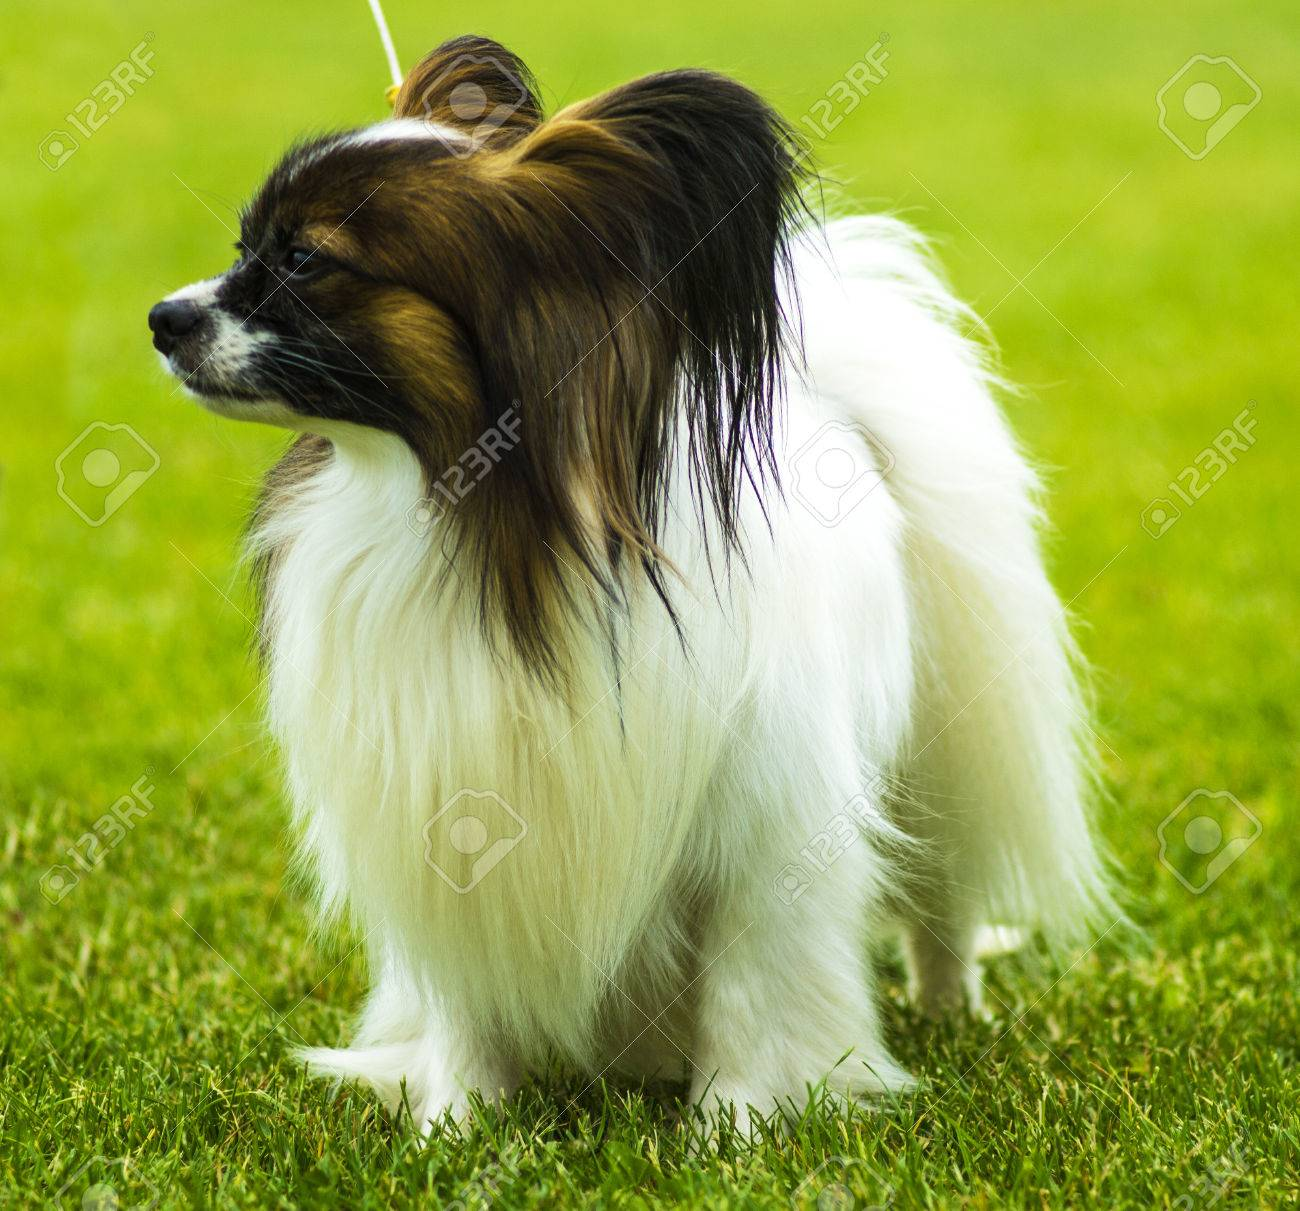 Close Up Portrait Of A Papillon A Small White And Red Papillon